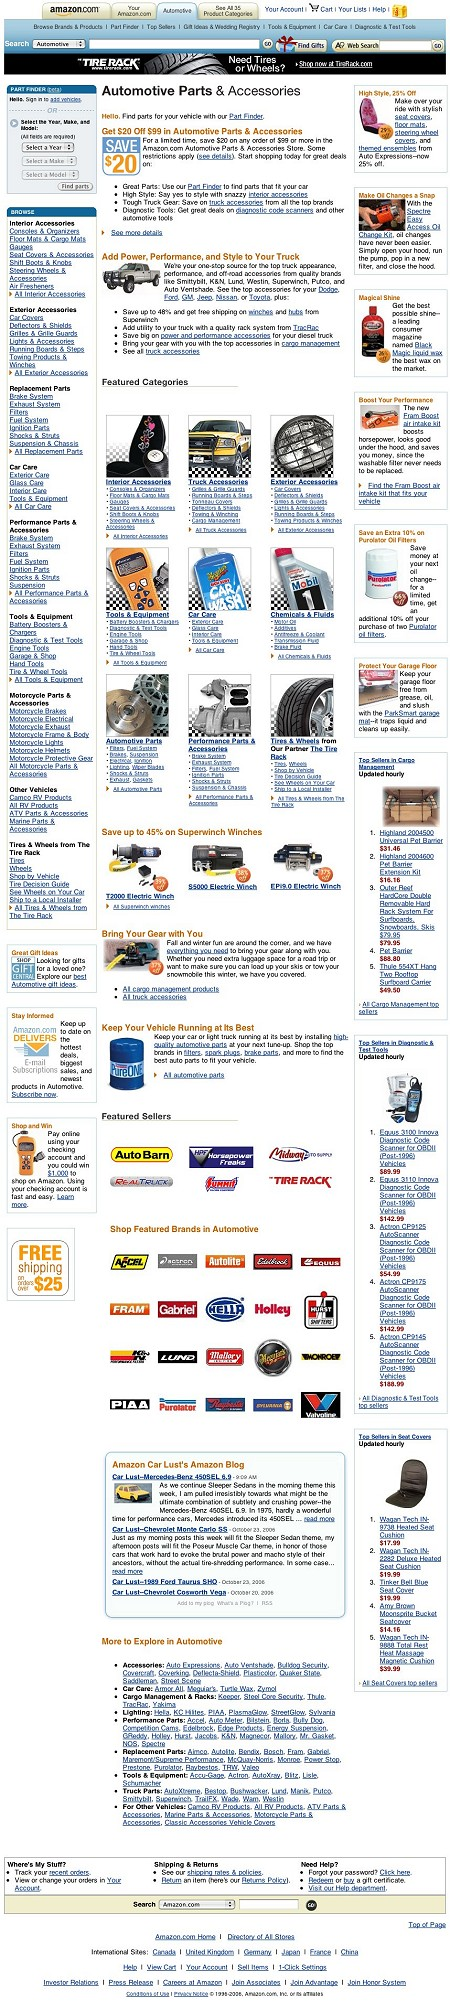 Automotive Parts and Accessories Store